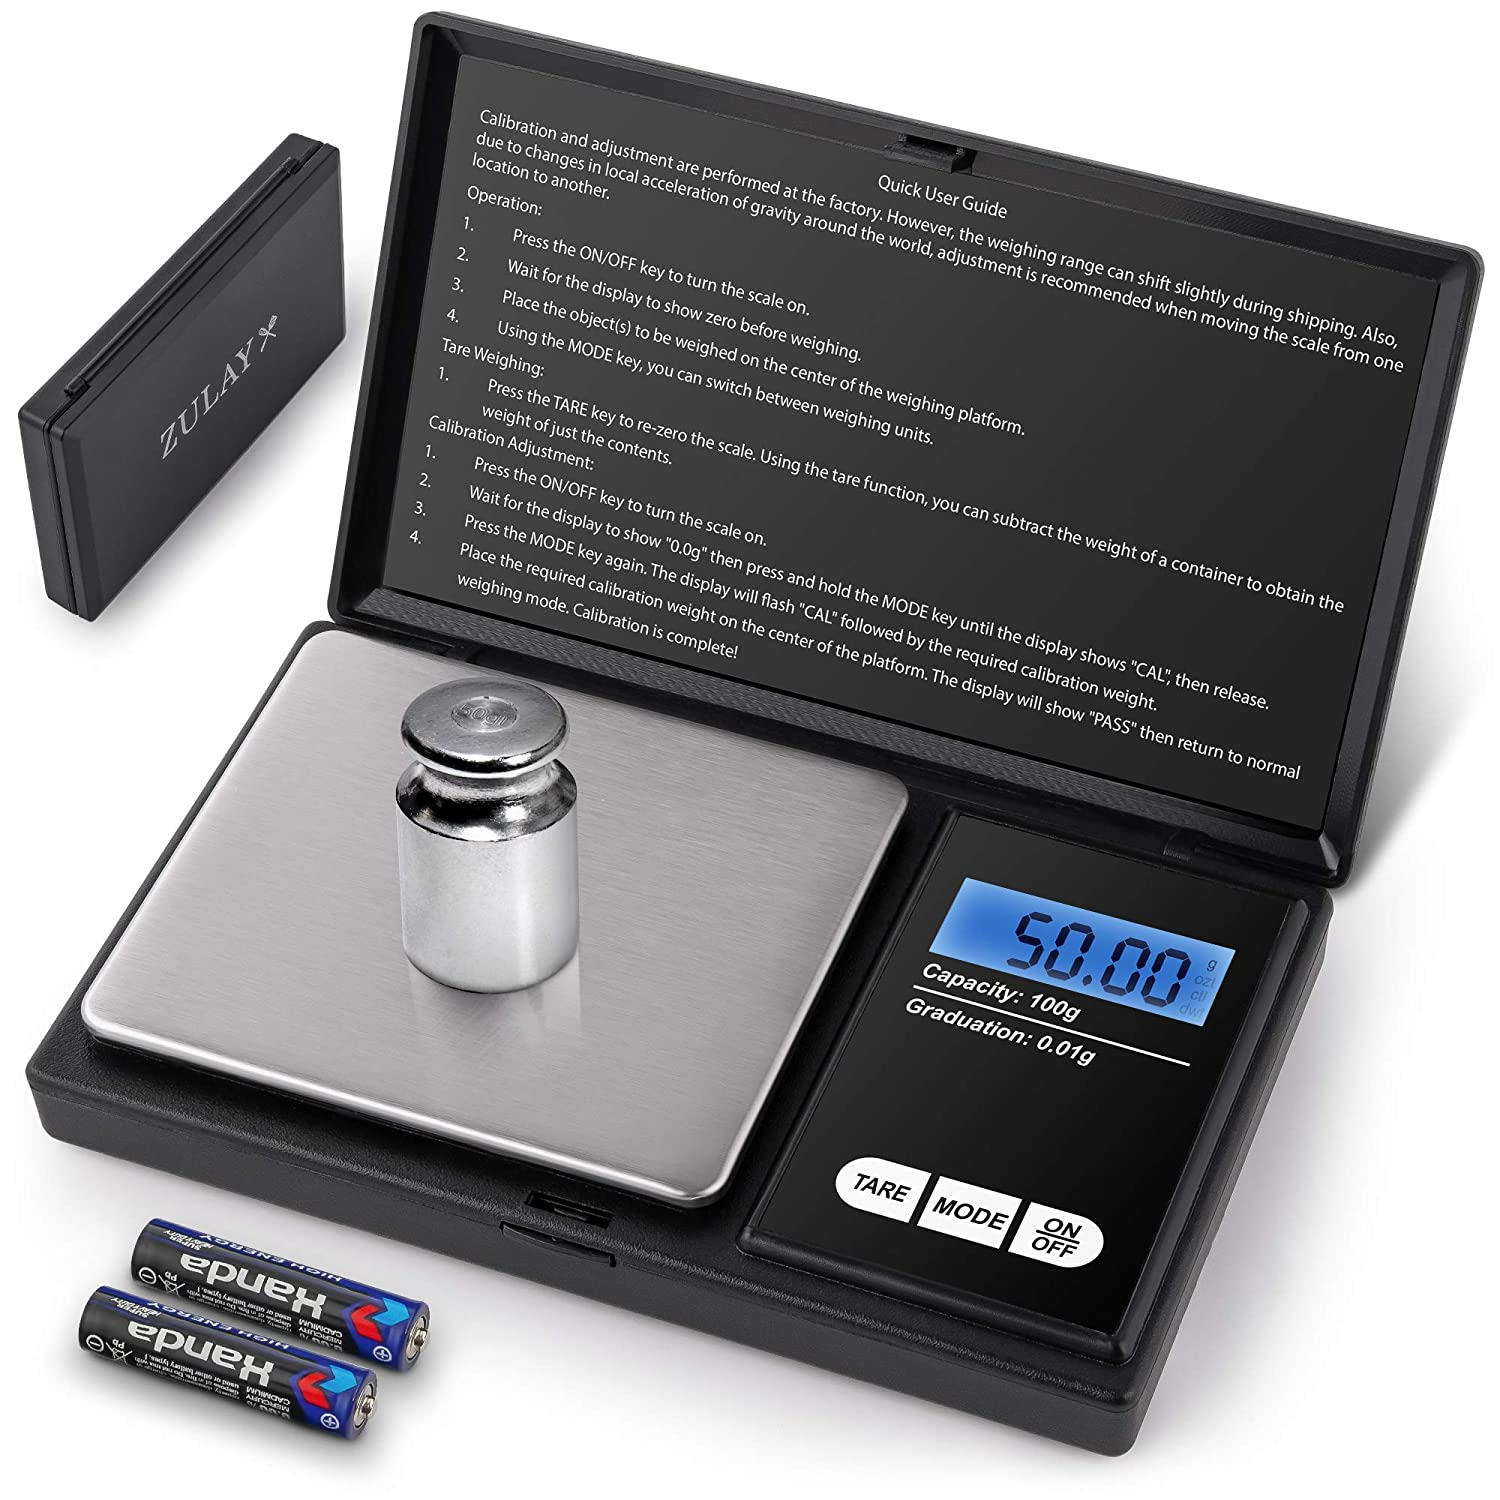 Zulay Digital Gram Scale - Kitchen Scales Digital Weight Grams and Ounces (0.01g/100g) - Digital Pocket Scale For Food, Jewelry, Powder, Herbs & More - Tare Function, Backlit LCD, & Batteries Included